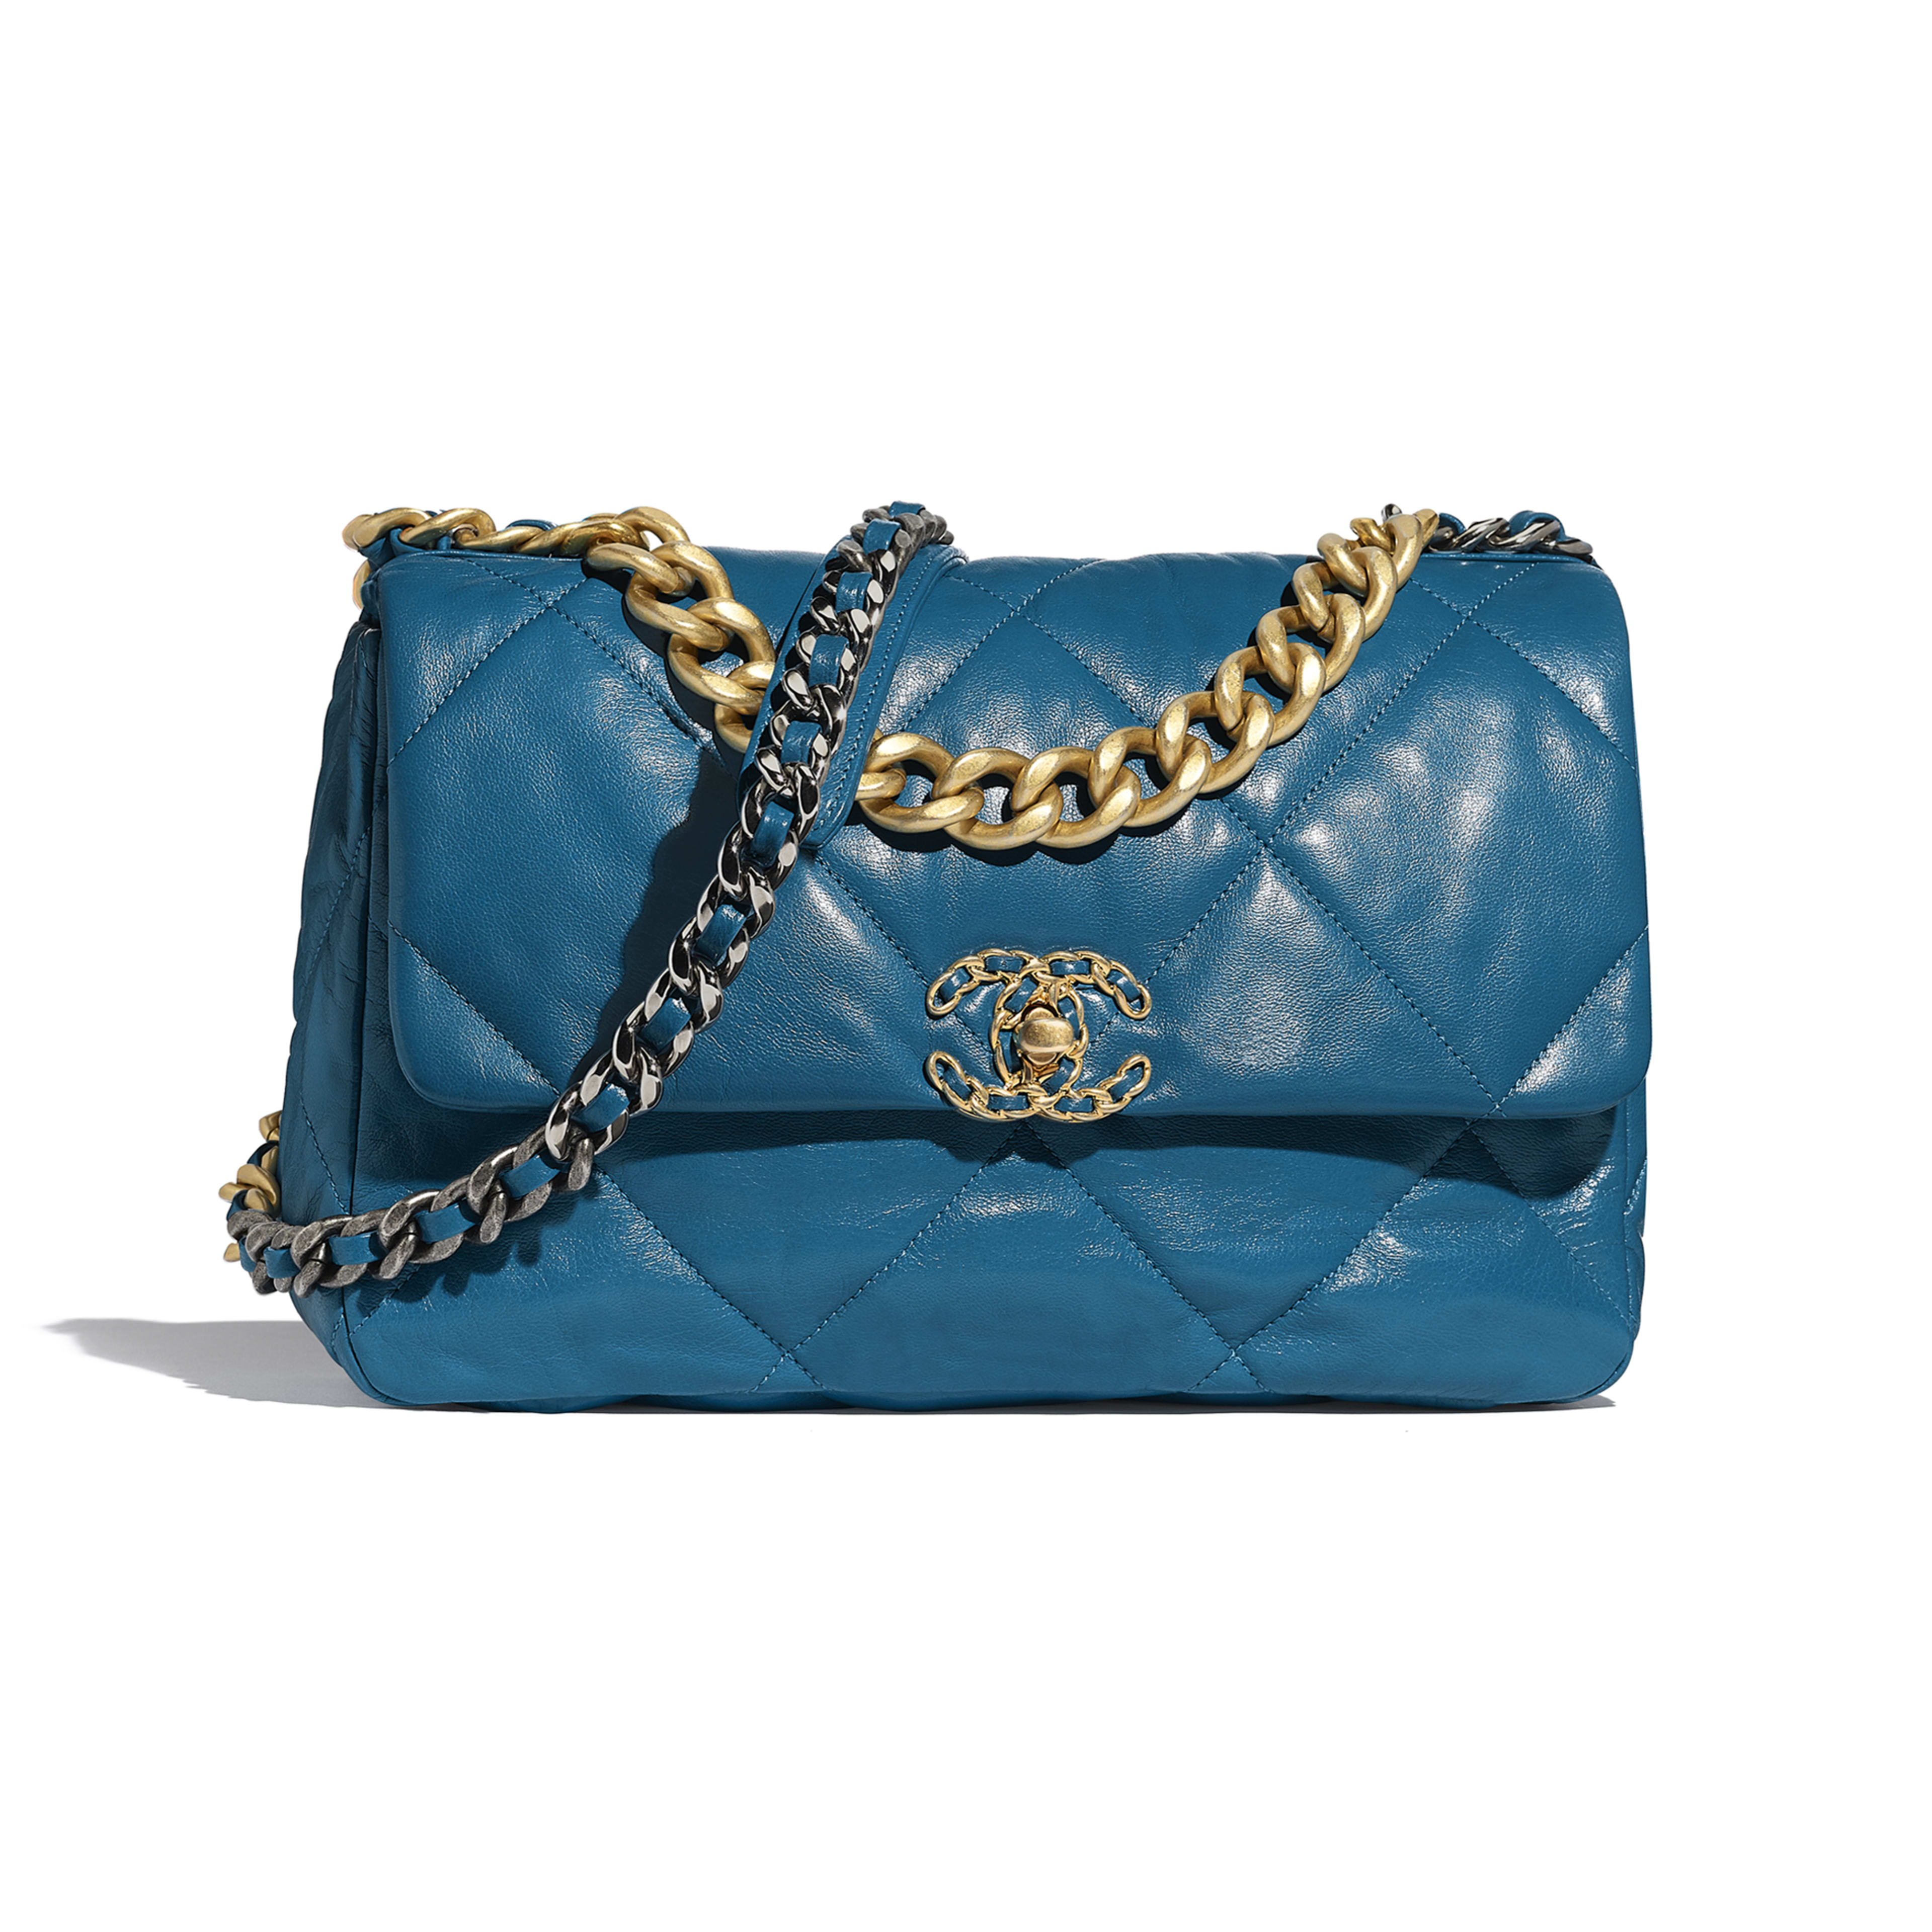 CHANEL 19 Large Flap Bag - Turquoise - Goatskin, Gold-Tone, Silver-Tone & Ruthenium-Finish Metal - Default view - see full sized version